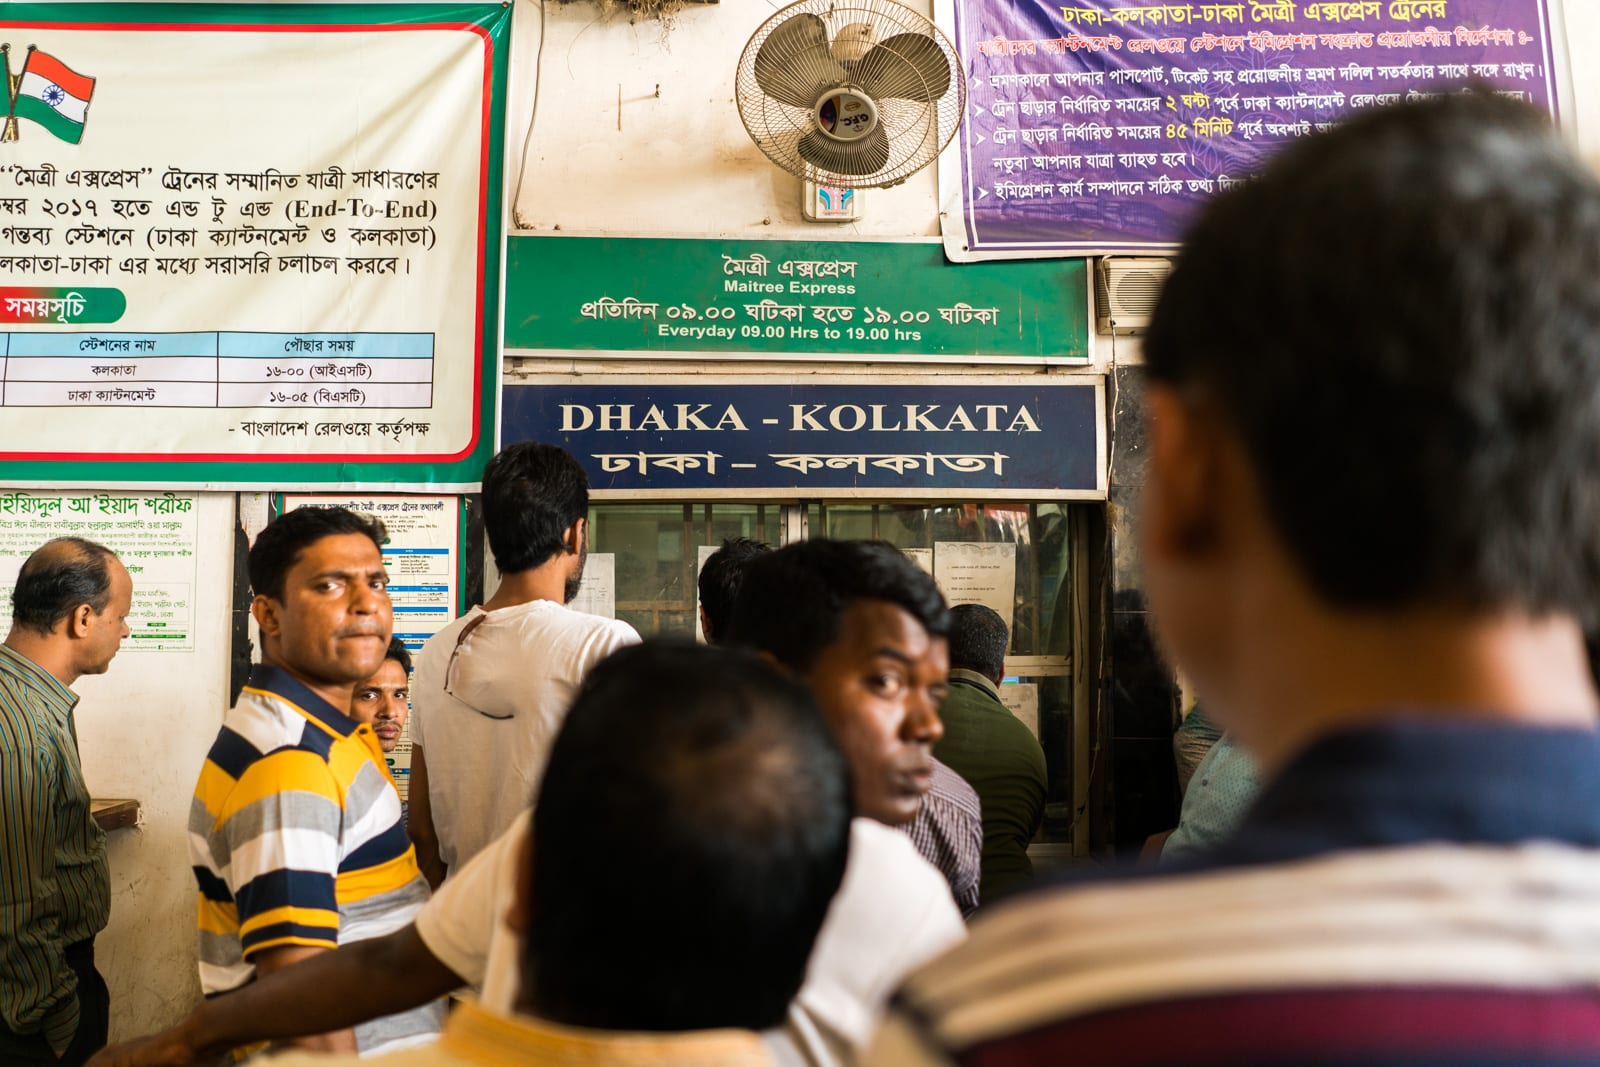 How to take the train from Dhaka to Kolkata - Ticketing window at Kamalapur - Lost With Purpose travel blog